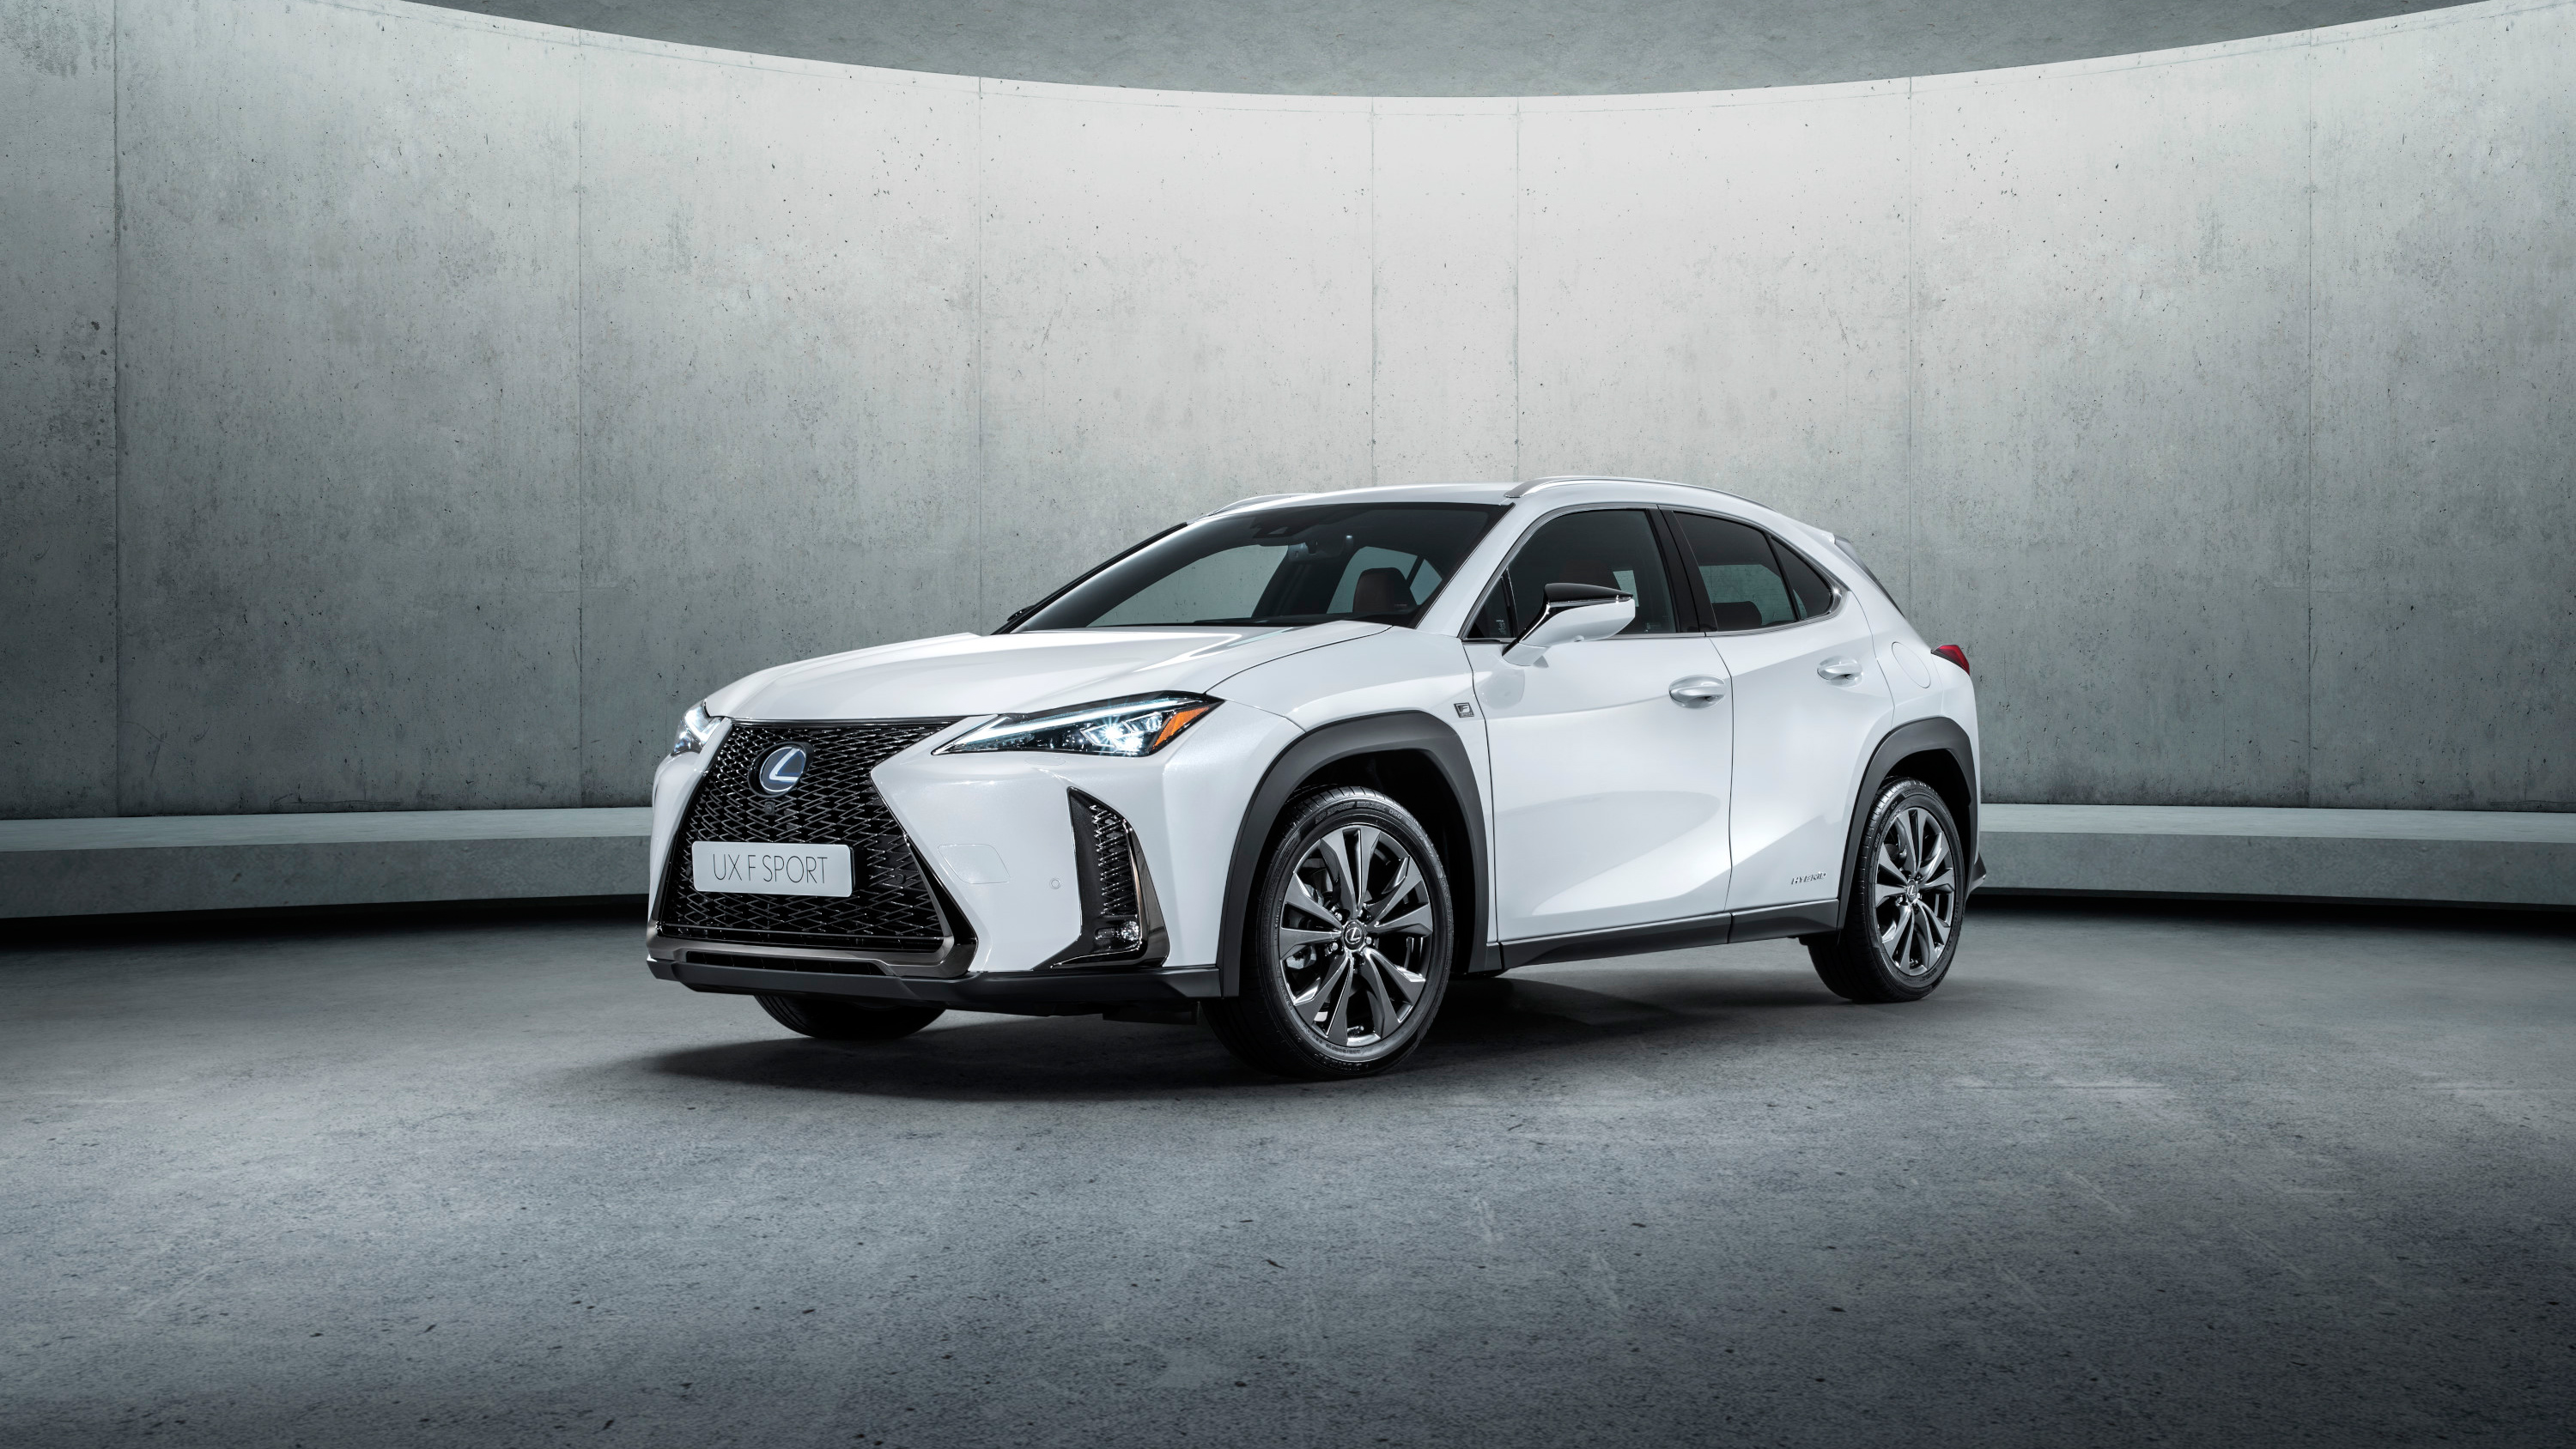 2018 lexus ux 250h f sport 2 wallpaper hd car wallpapers id 9815. Black Bedroom Furniture Sets. Home Design Ideas